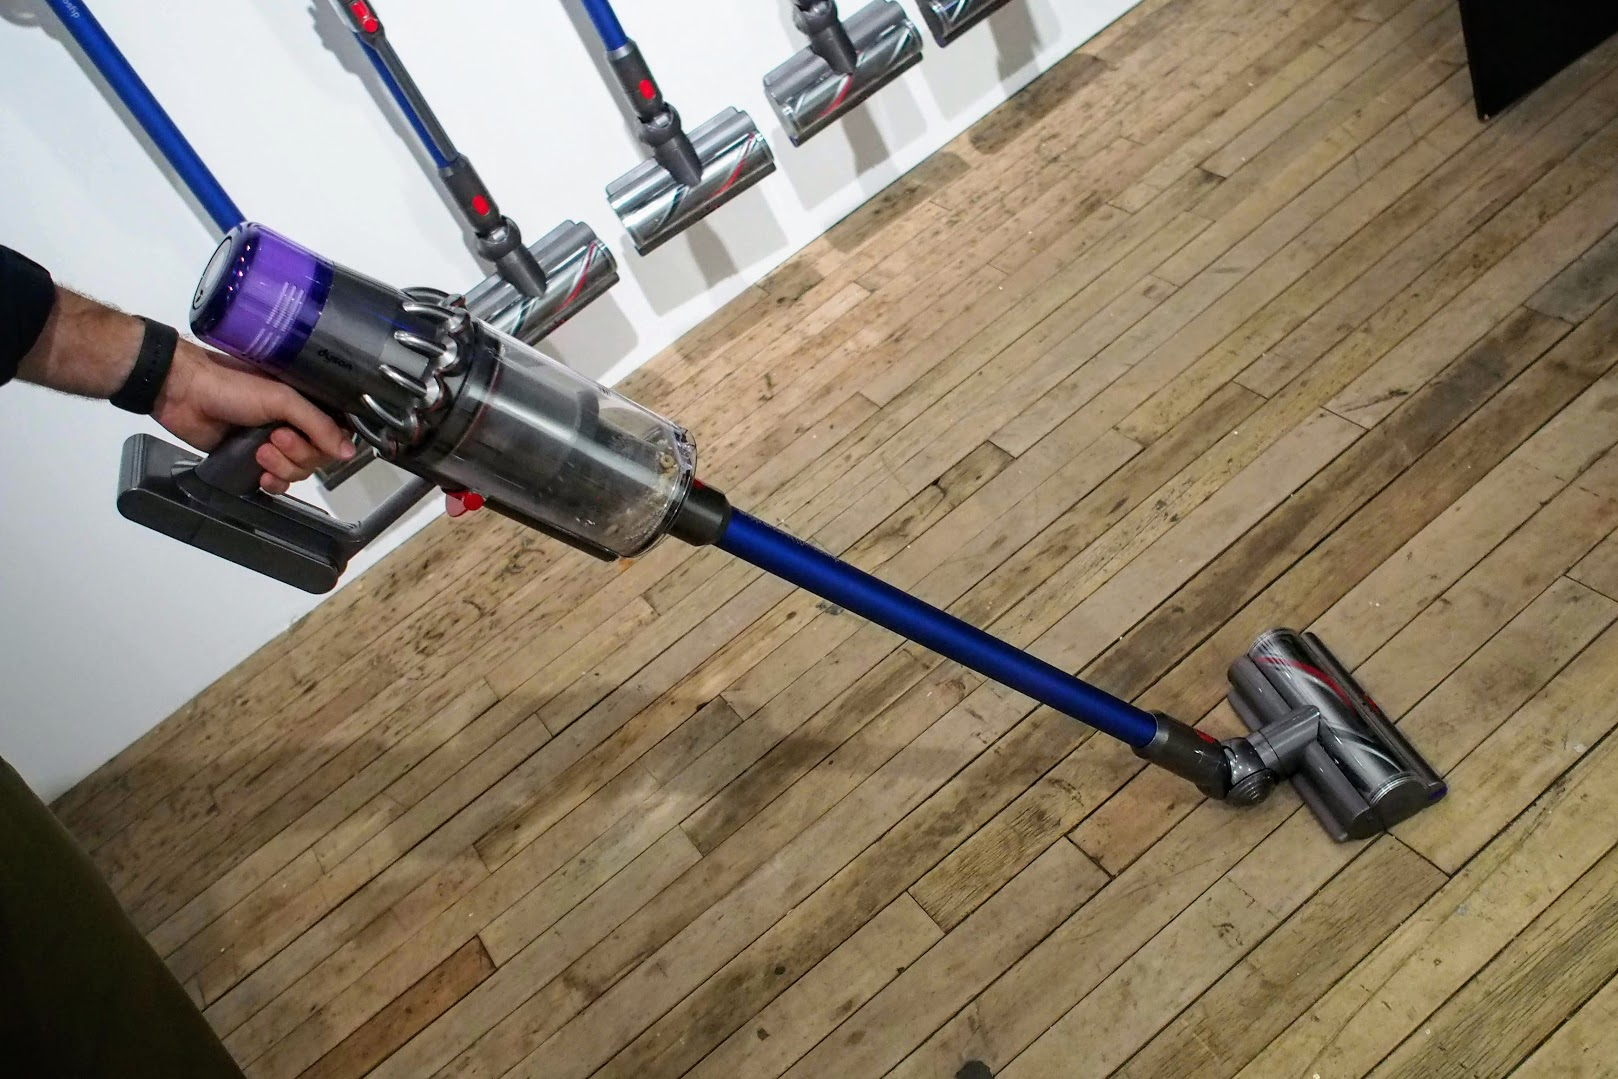 Dyson gets personal with new vacuum, air purifier, lamp | Reviews com